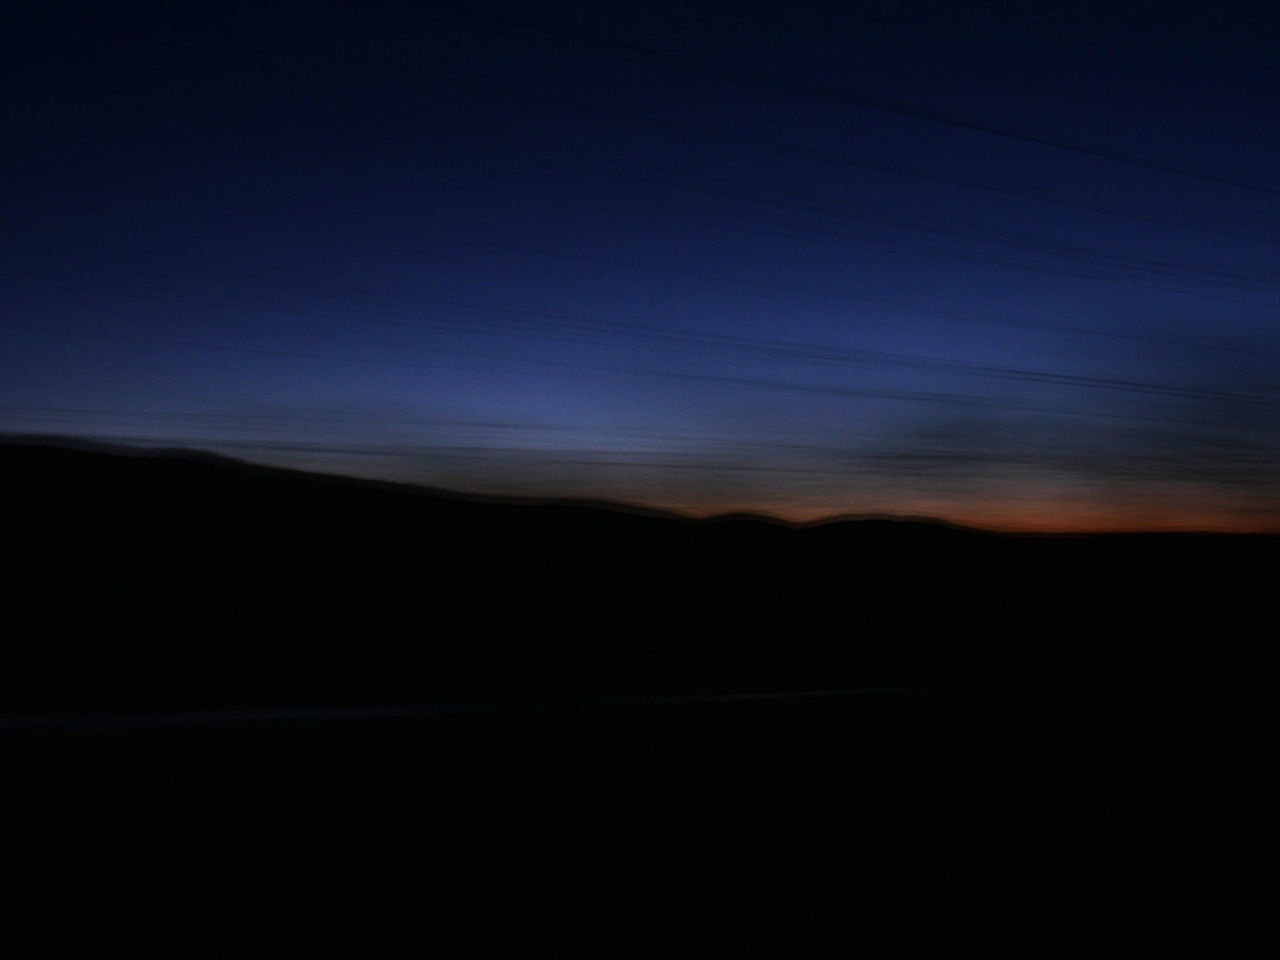 Atmosphere Car Photography Desert Horizon Over Land Landscape Scenics Silhouette Skyline At Night Sunset Tranquility